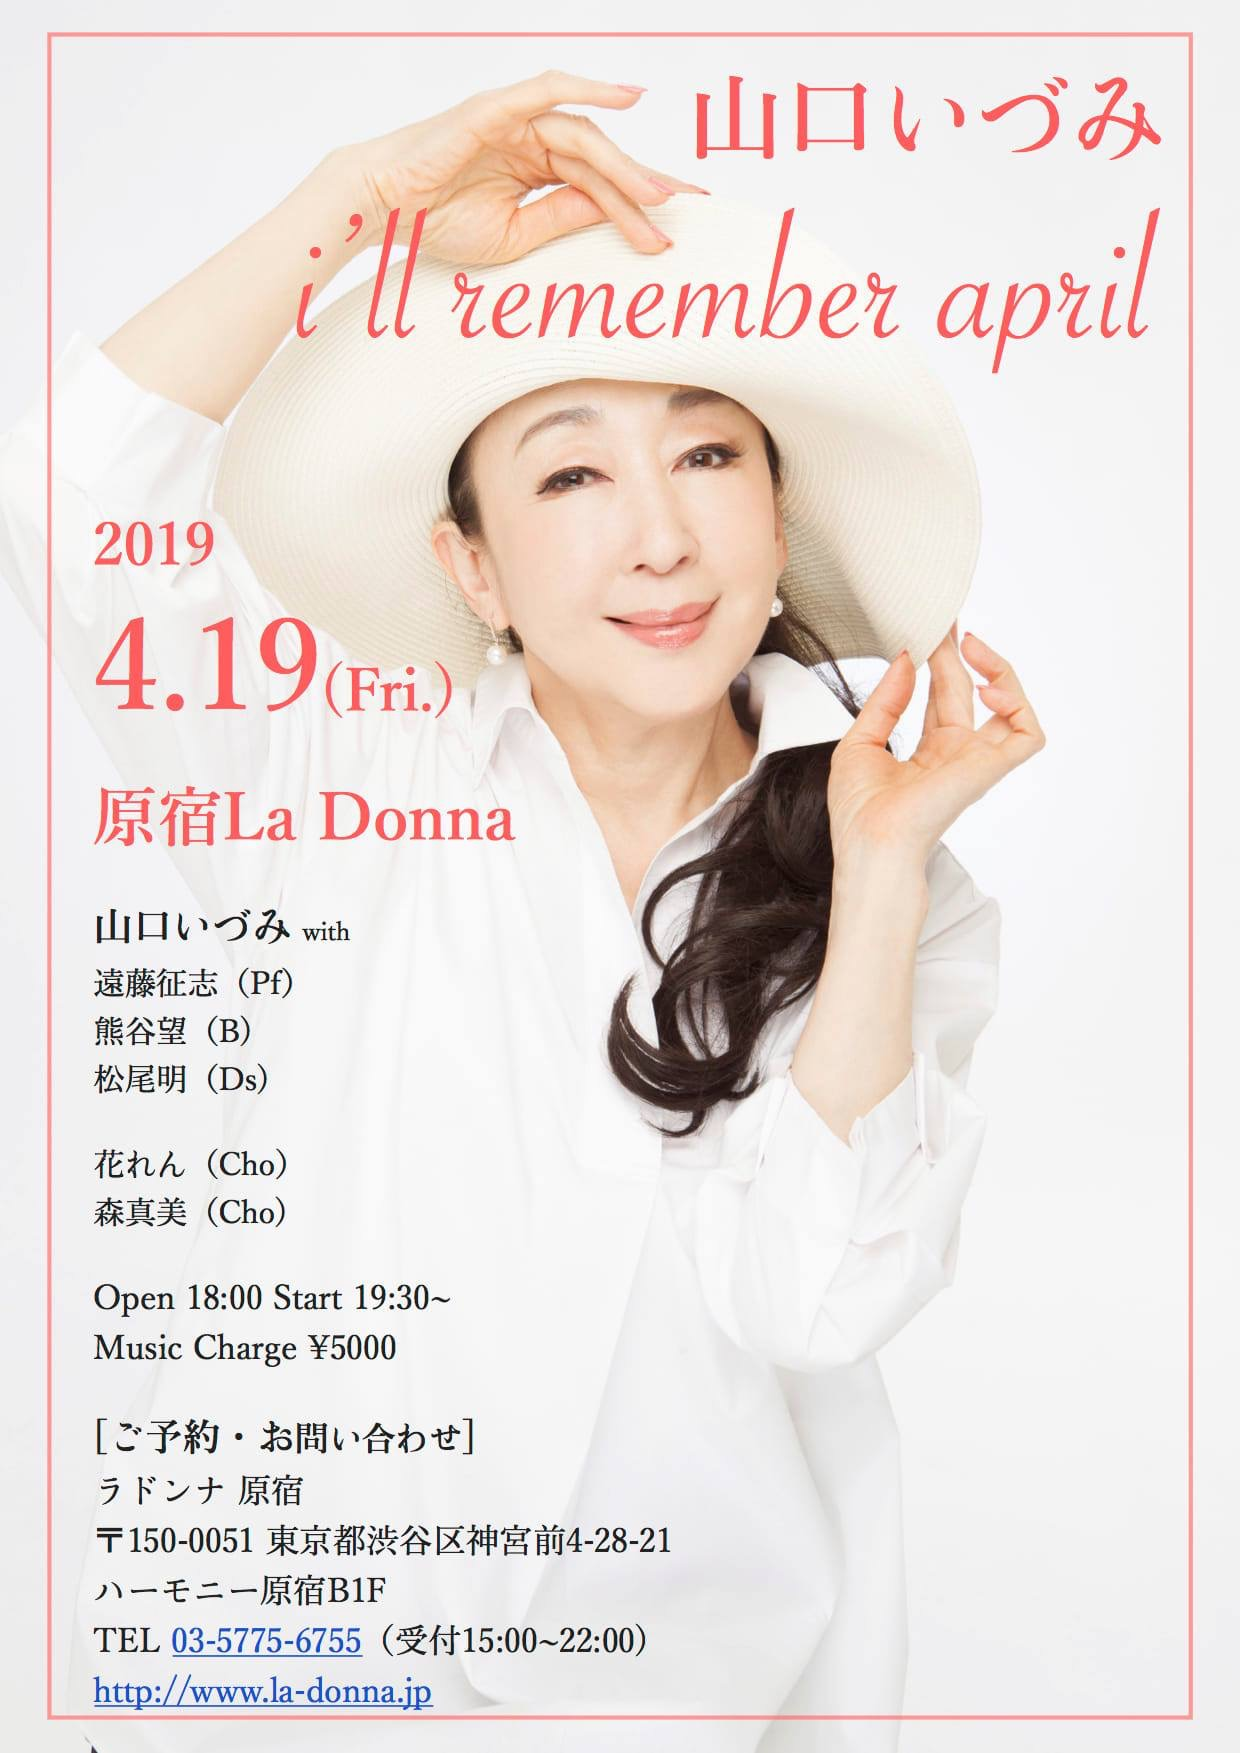 山口いづみ i'll remember april